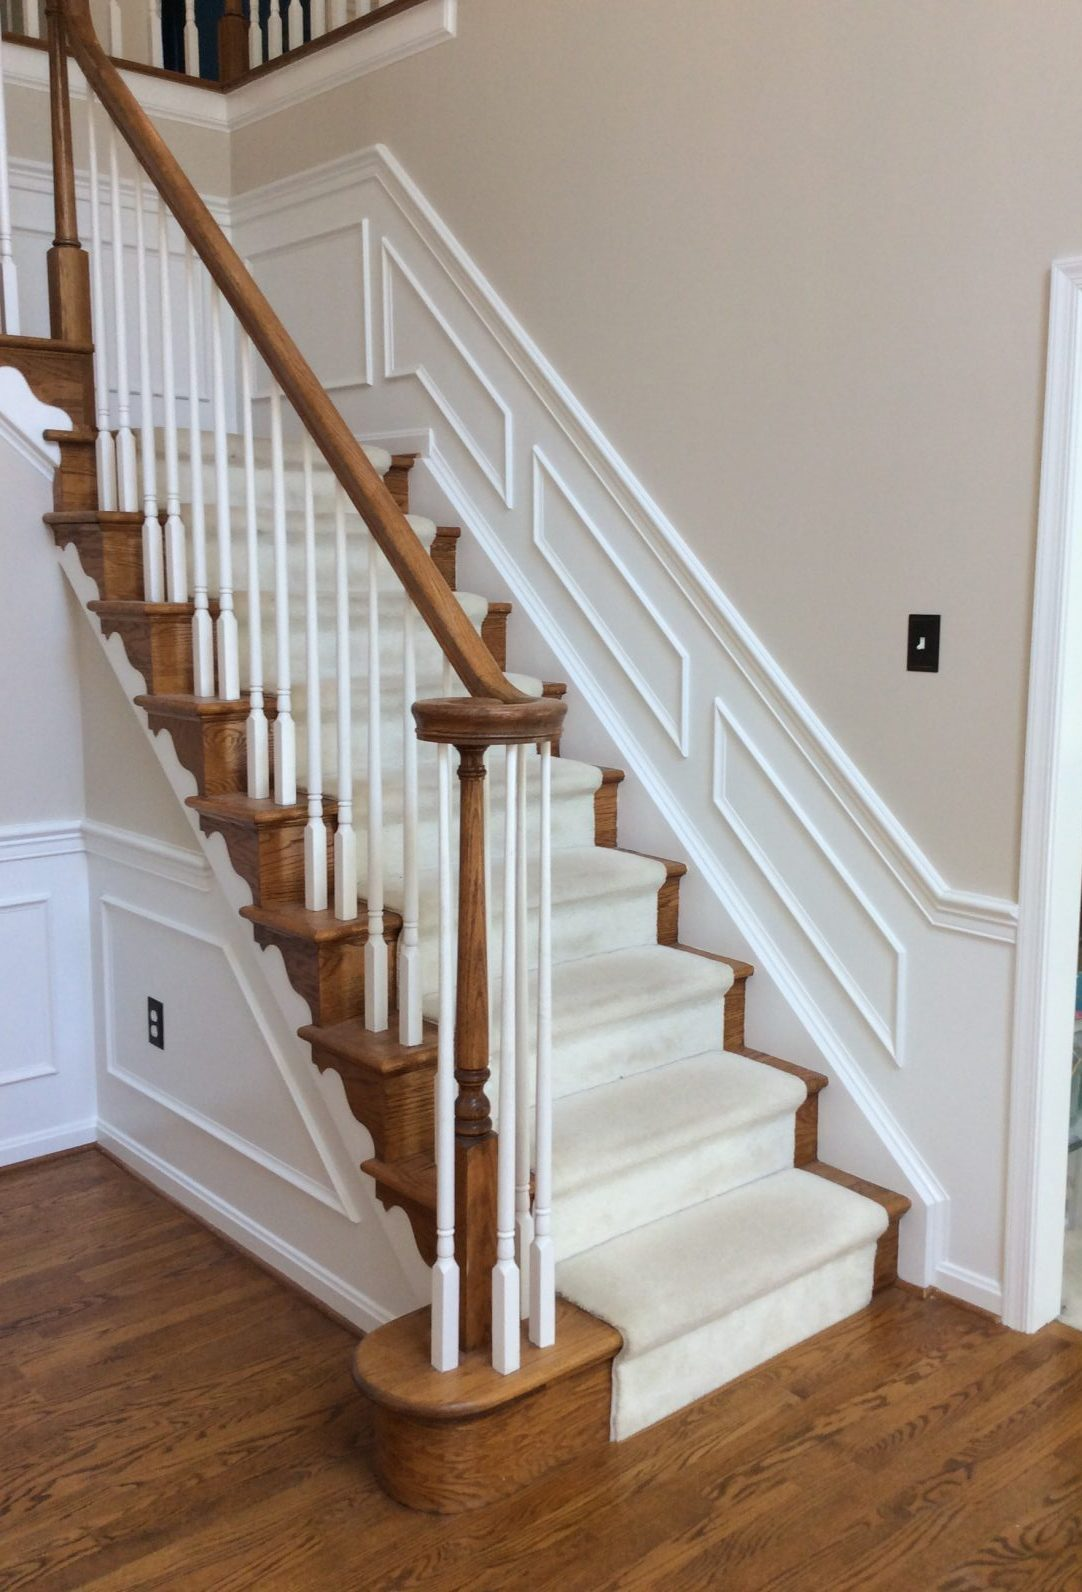 Carpentry Services in Chantilly